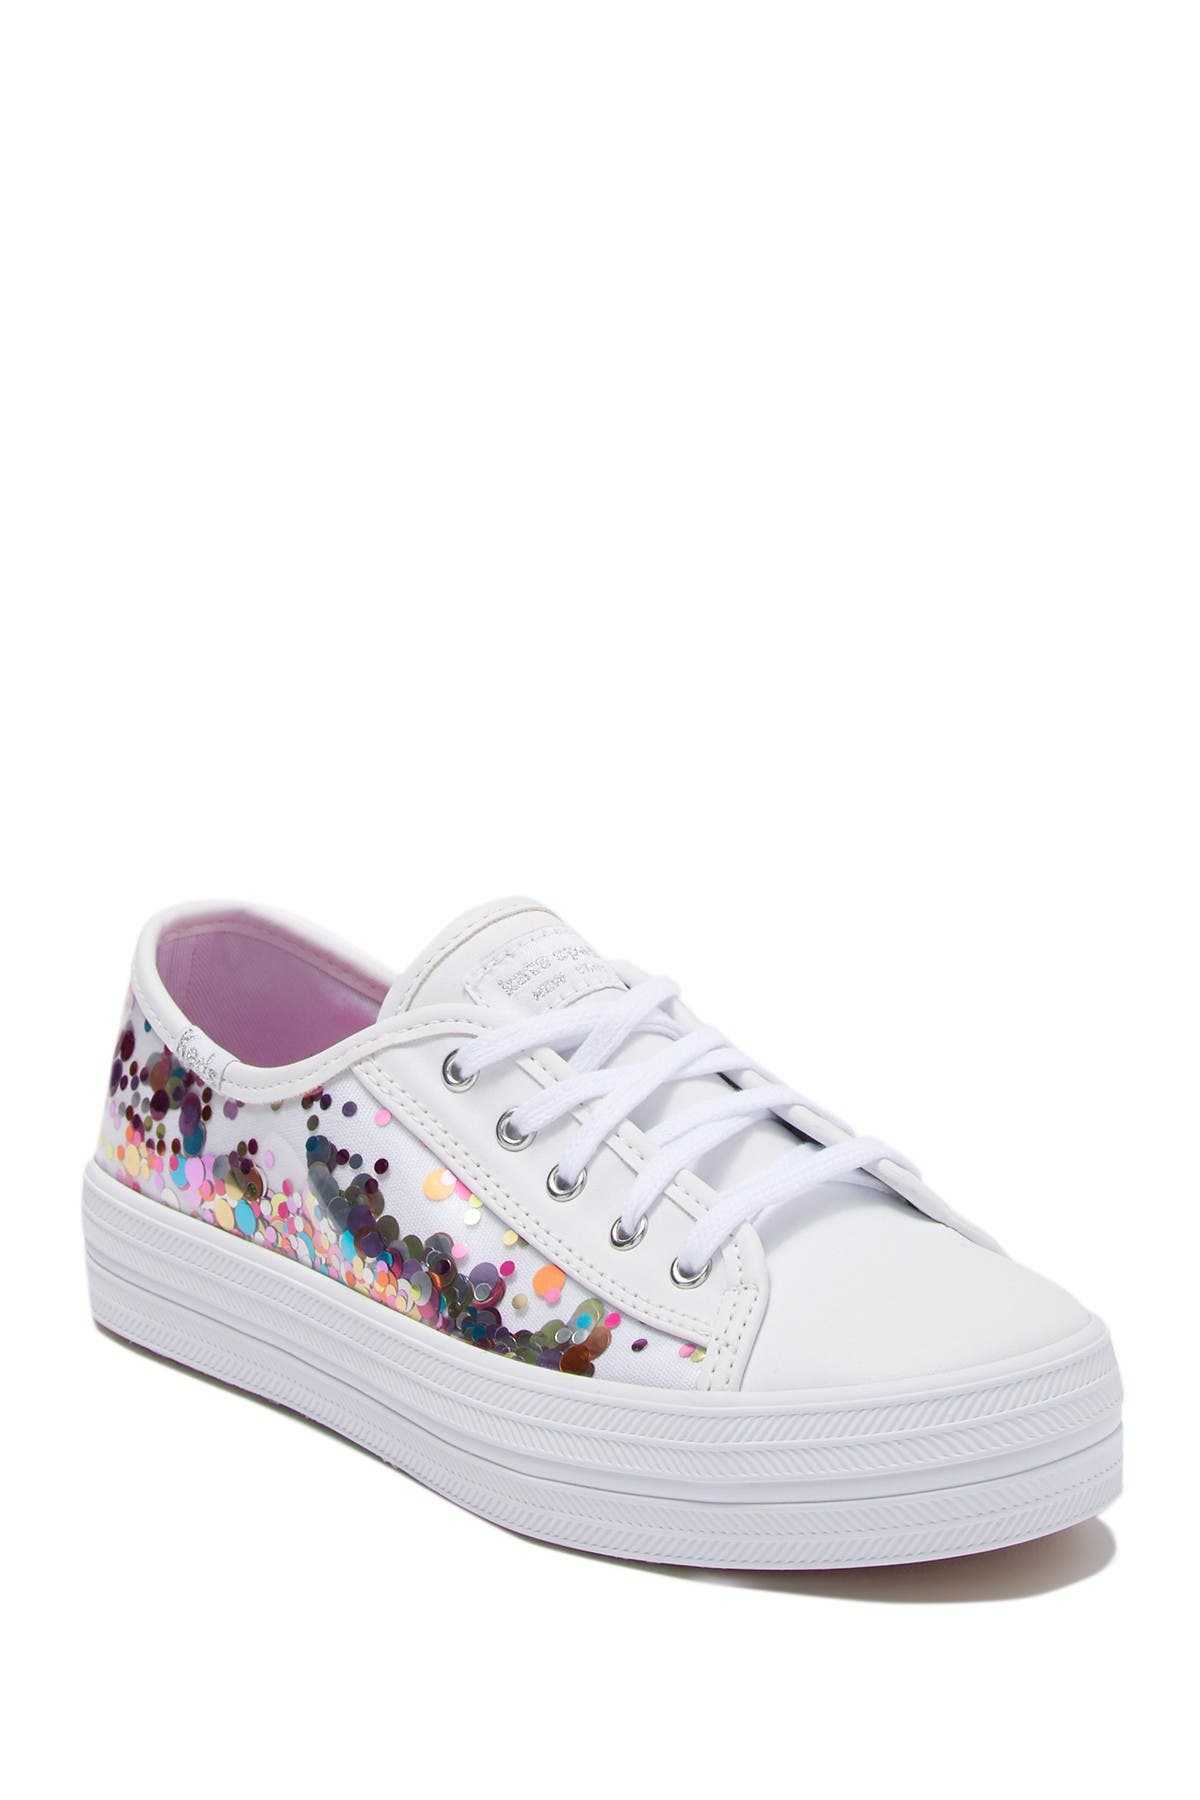 kate spade keds for toddlers